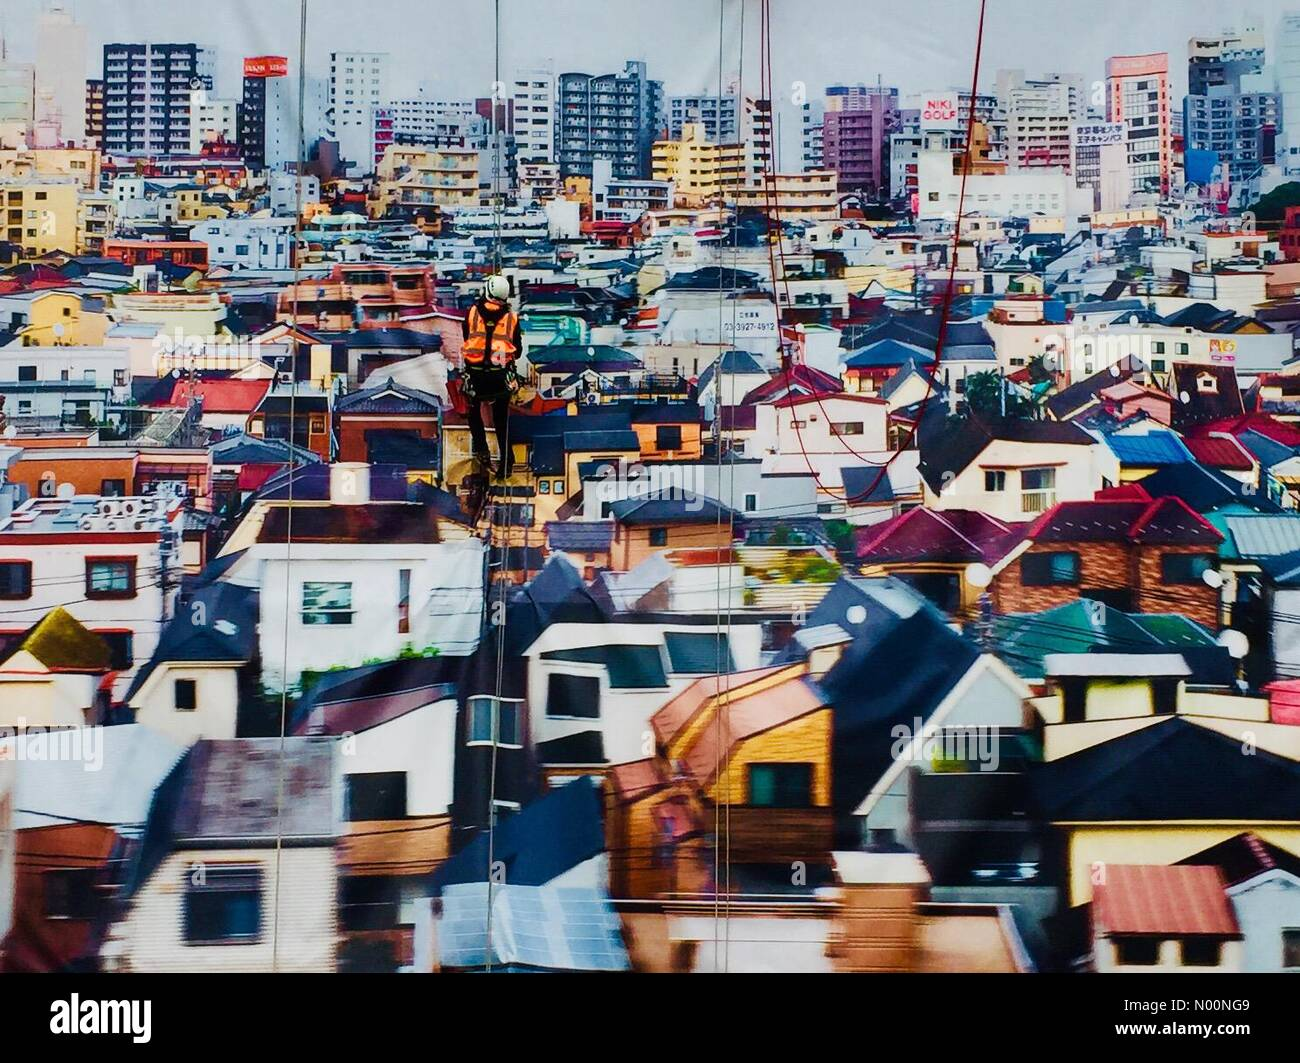 London, UK. 23rd April, 2018. Taking down the Andres Gursky image on the wall of the Hayward Gallery Credit: Step/StockimoNews/Alamy Live News Stock Photo